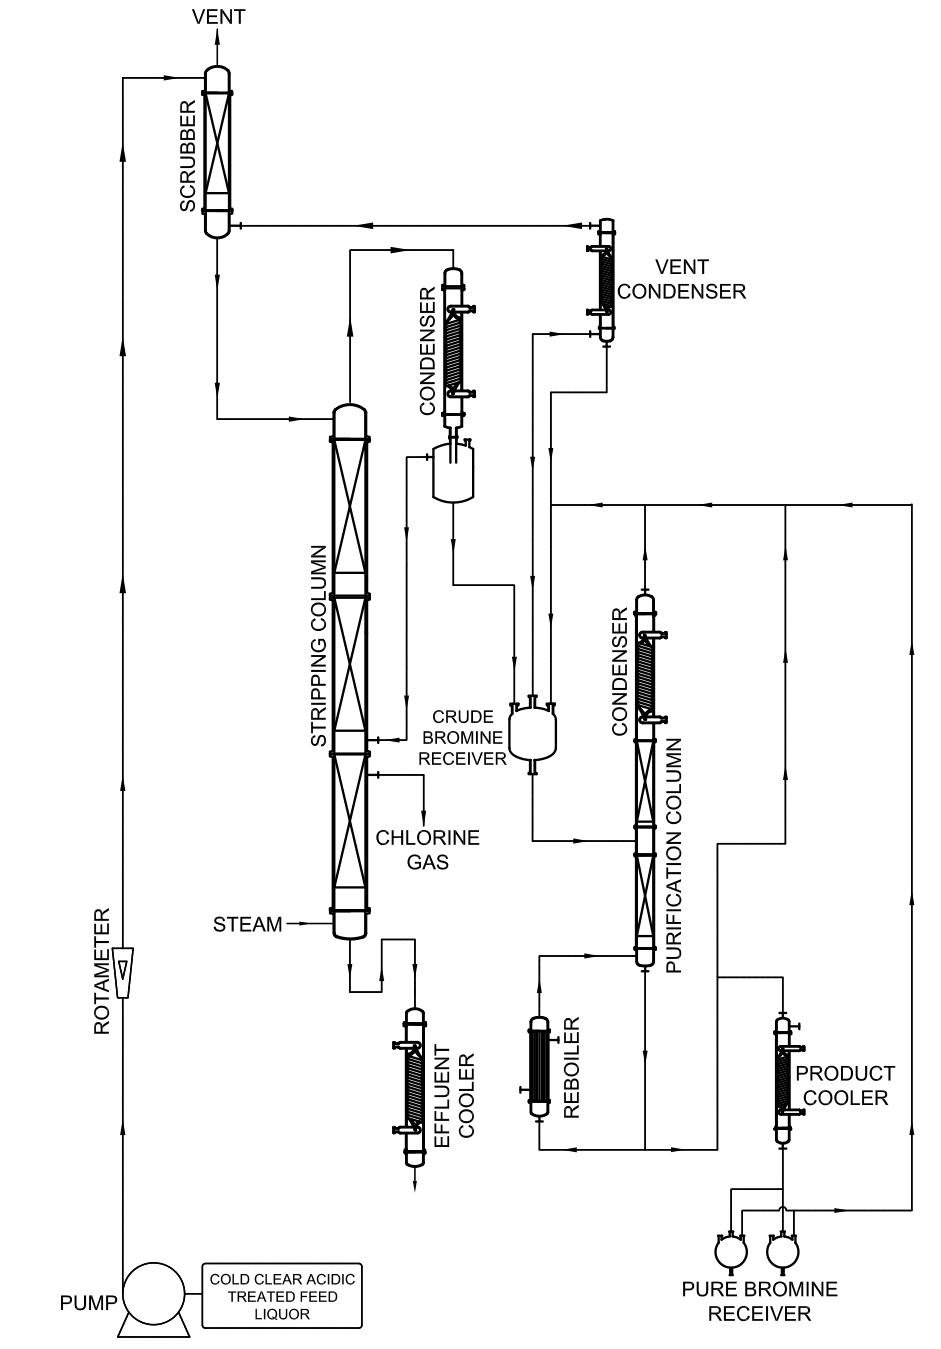 hight resolution of  phase separator purification column collection pot reboiler scrubber with associated glass piping and fittings all wefted components are made from